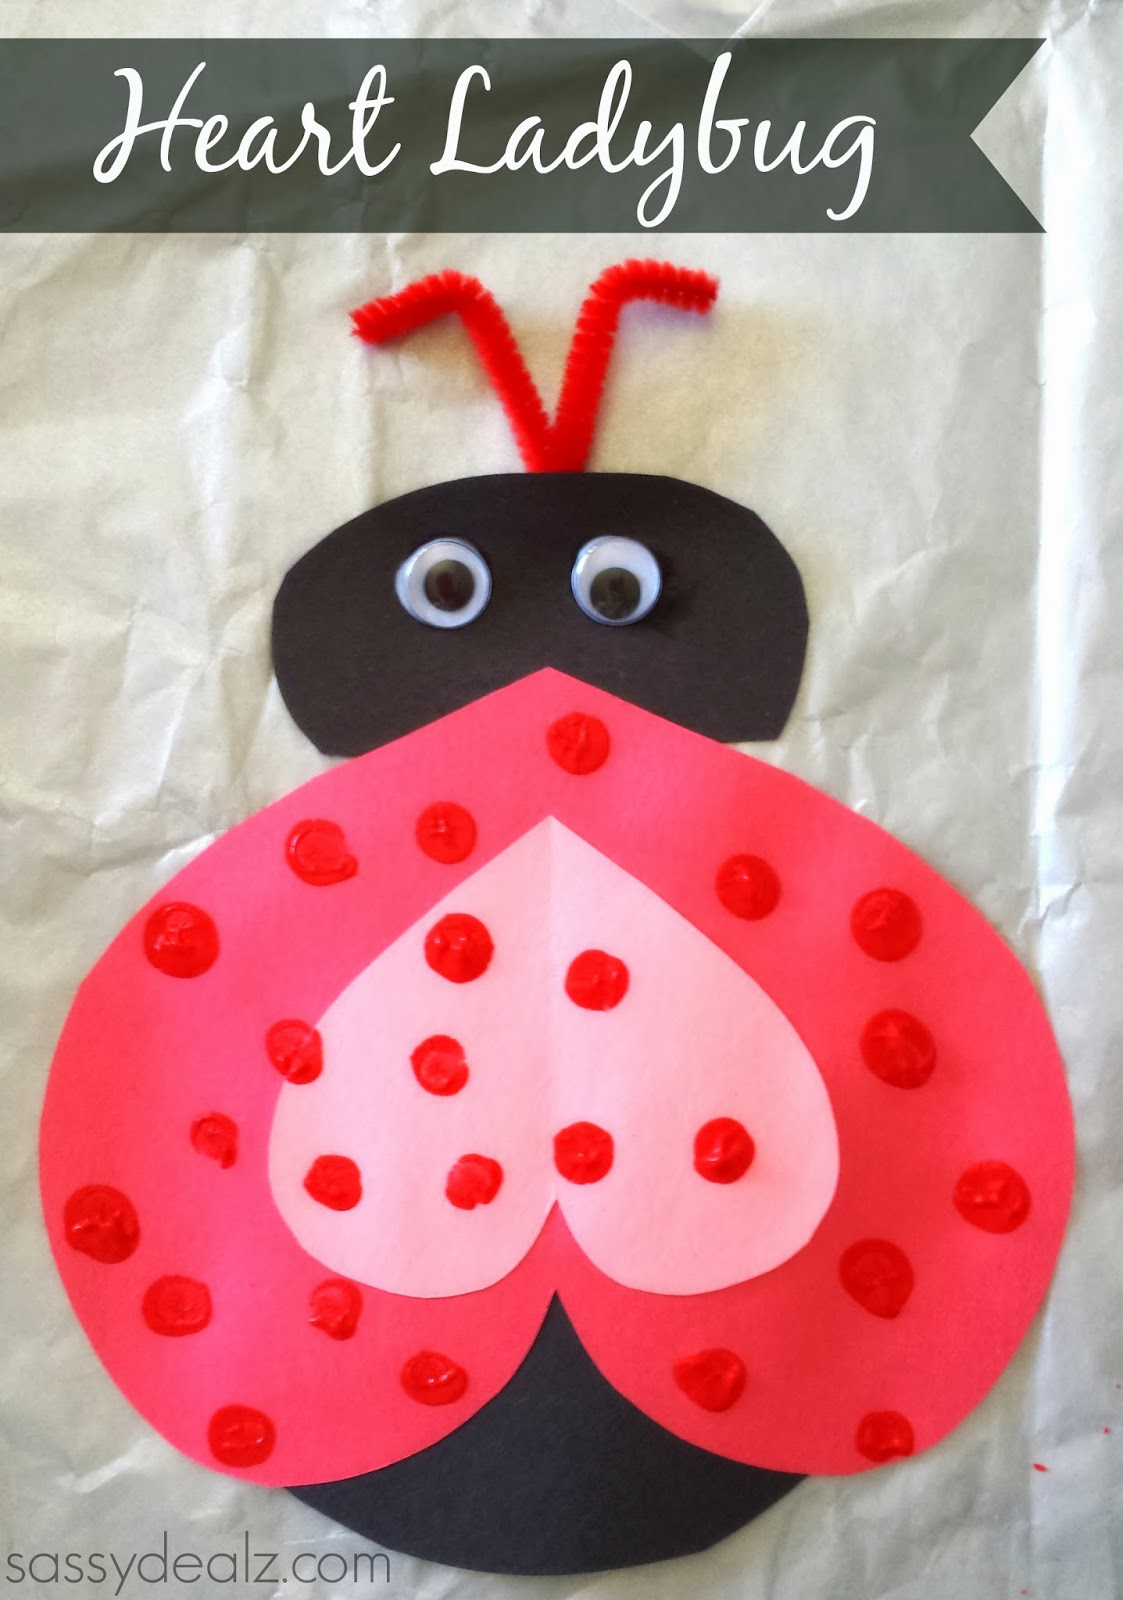 Heart ladybug valentines day craft for kids crafty morning for Toddler valentine craft ideas